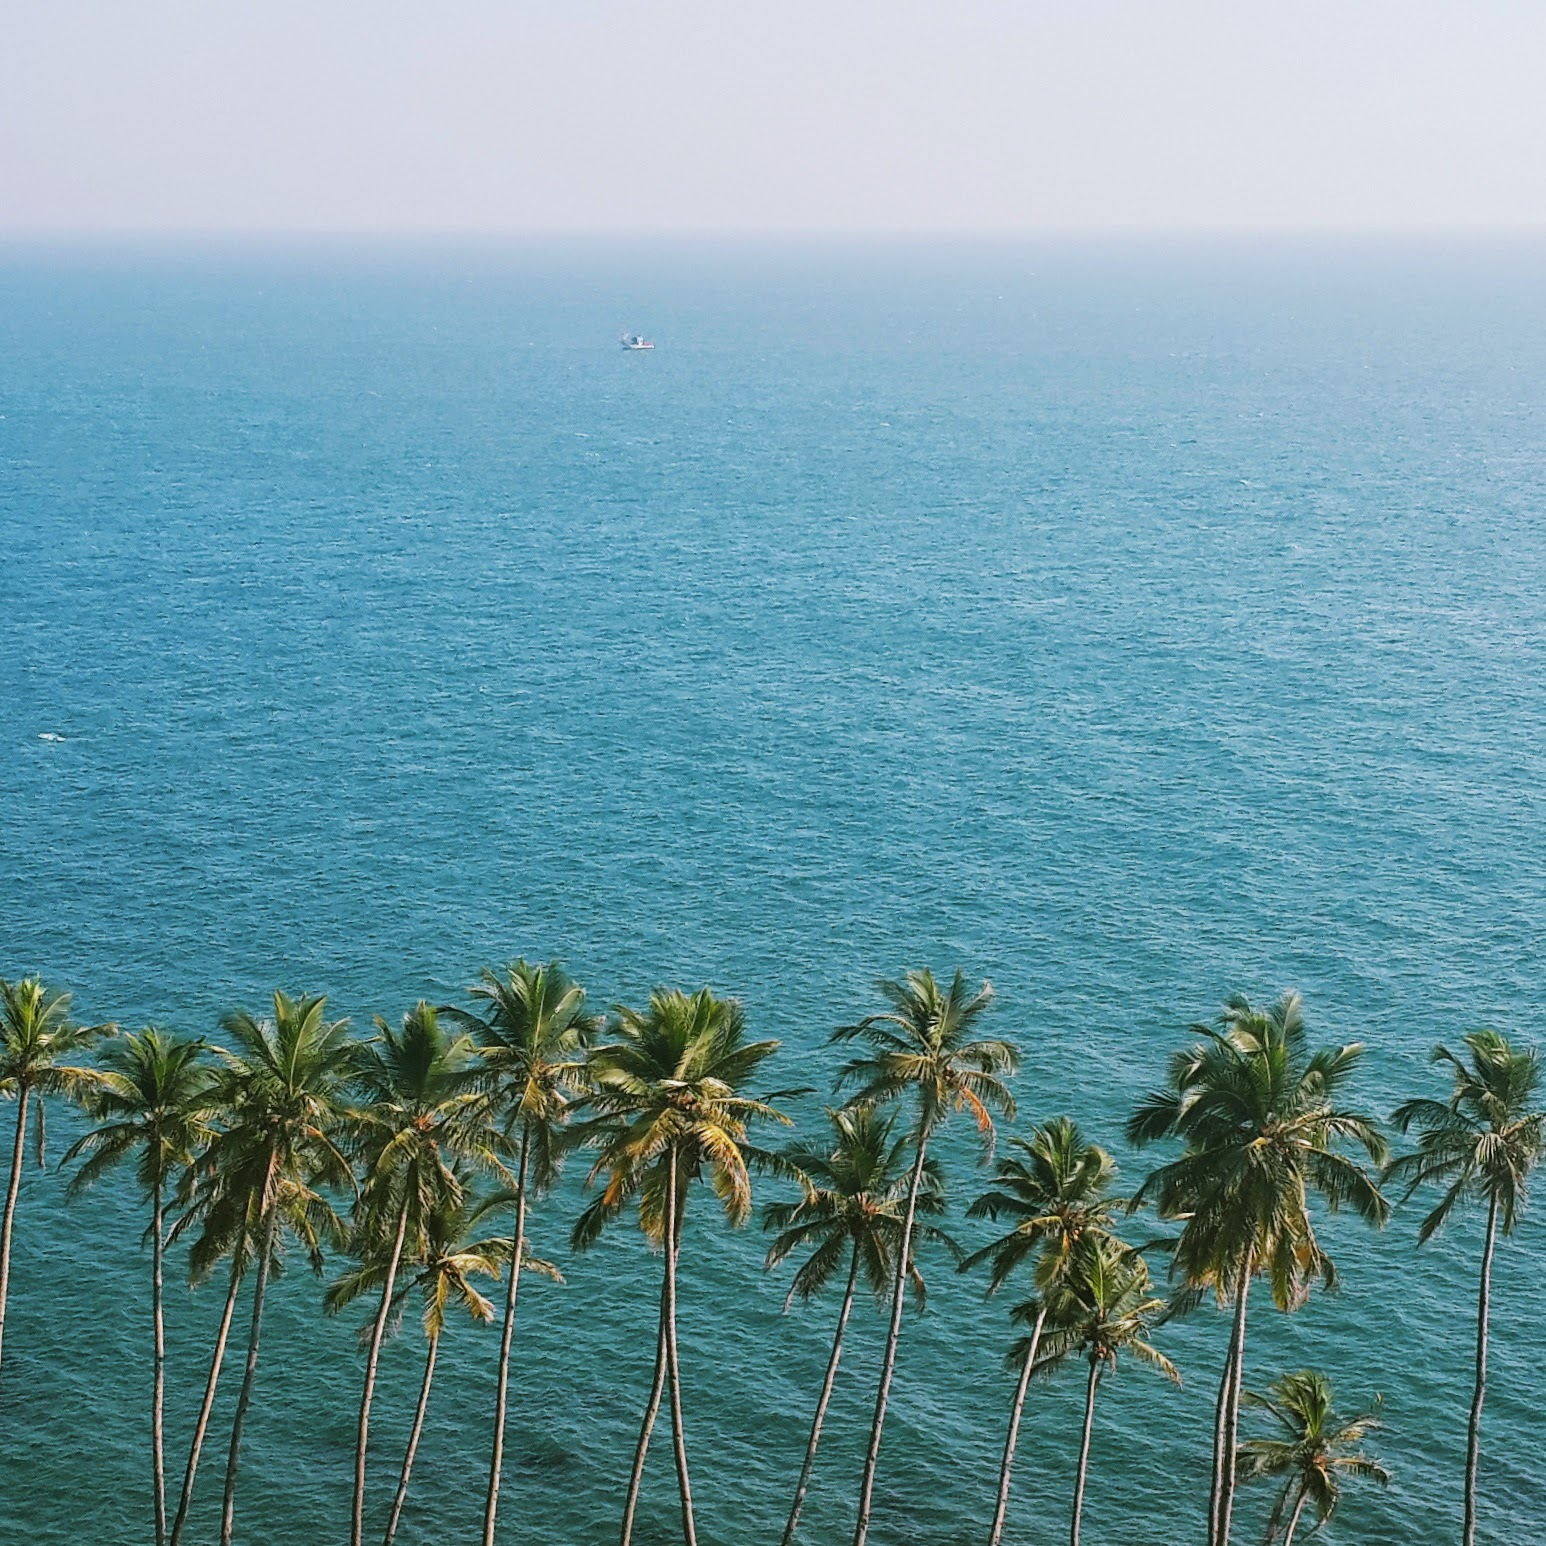 landscape, scenery, goa, coconut, trees, palms, sea, water, capture, photography, landscape